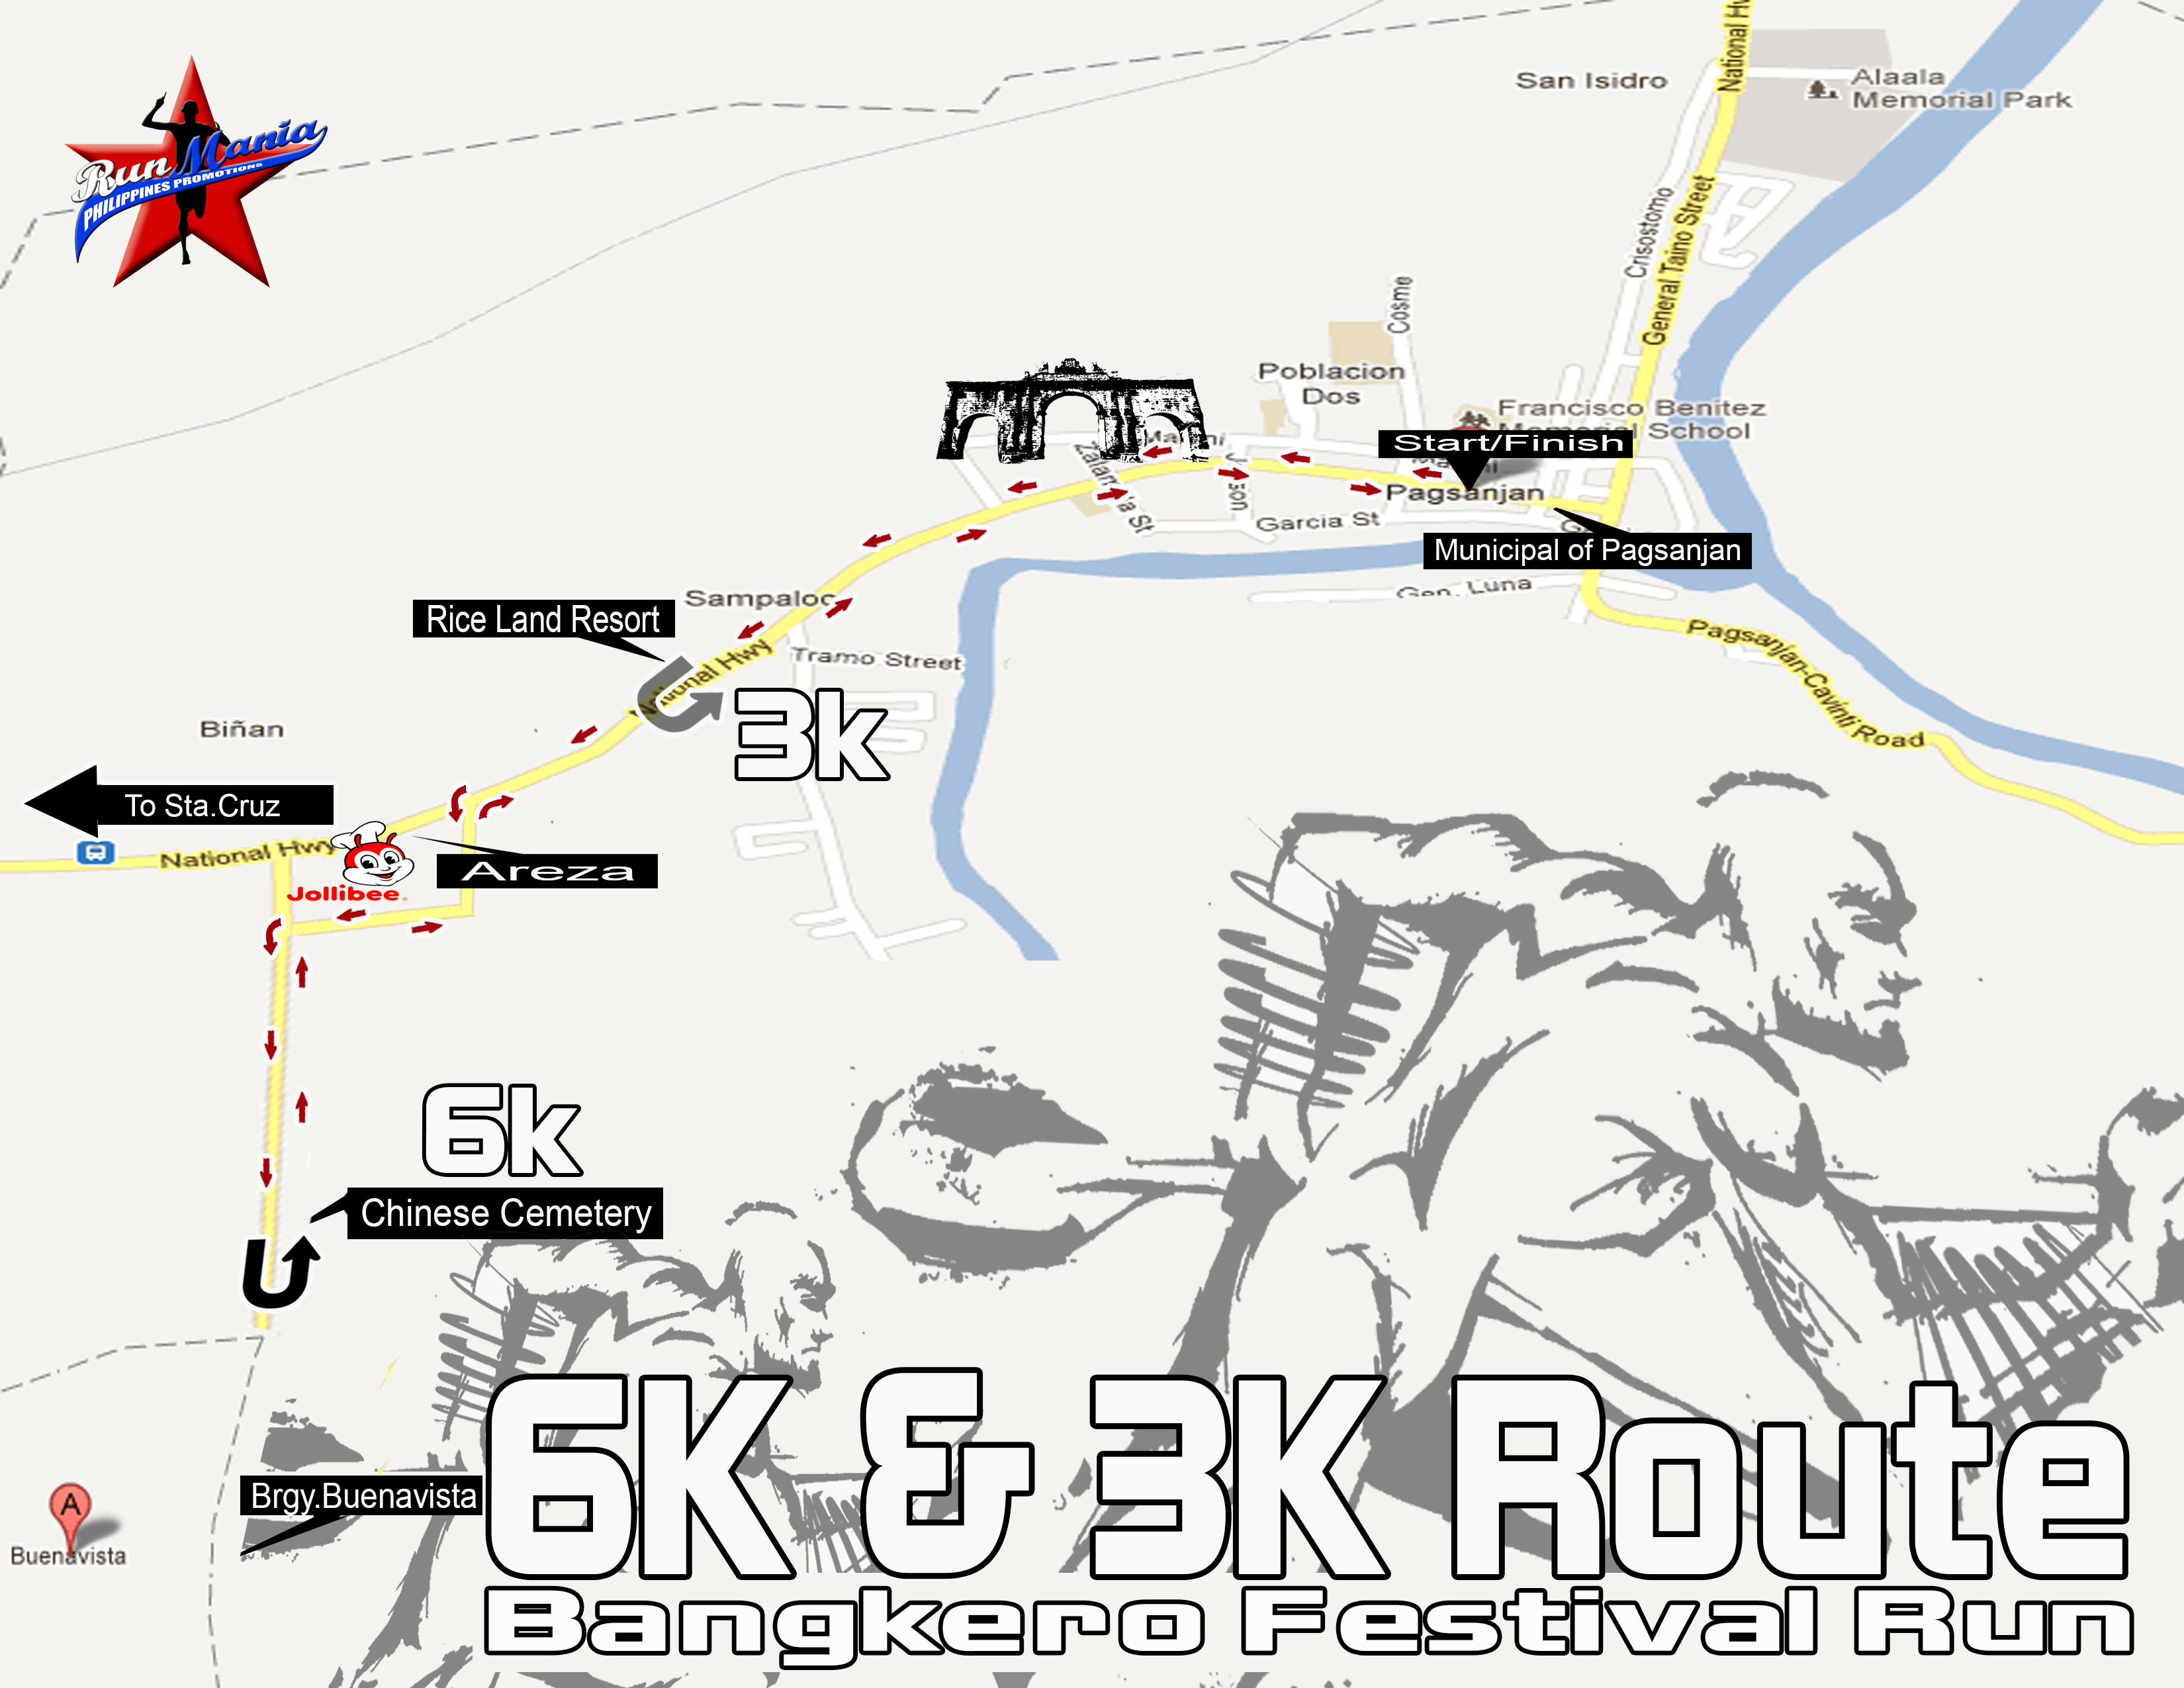 bangkero-festival-run-2013-3k-6k-route-map